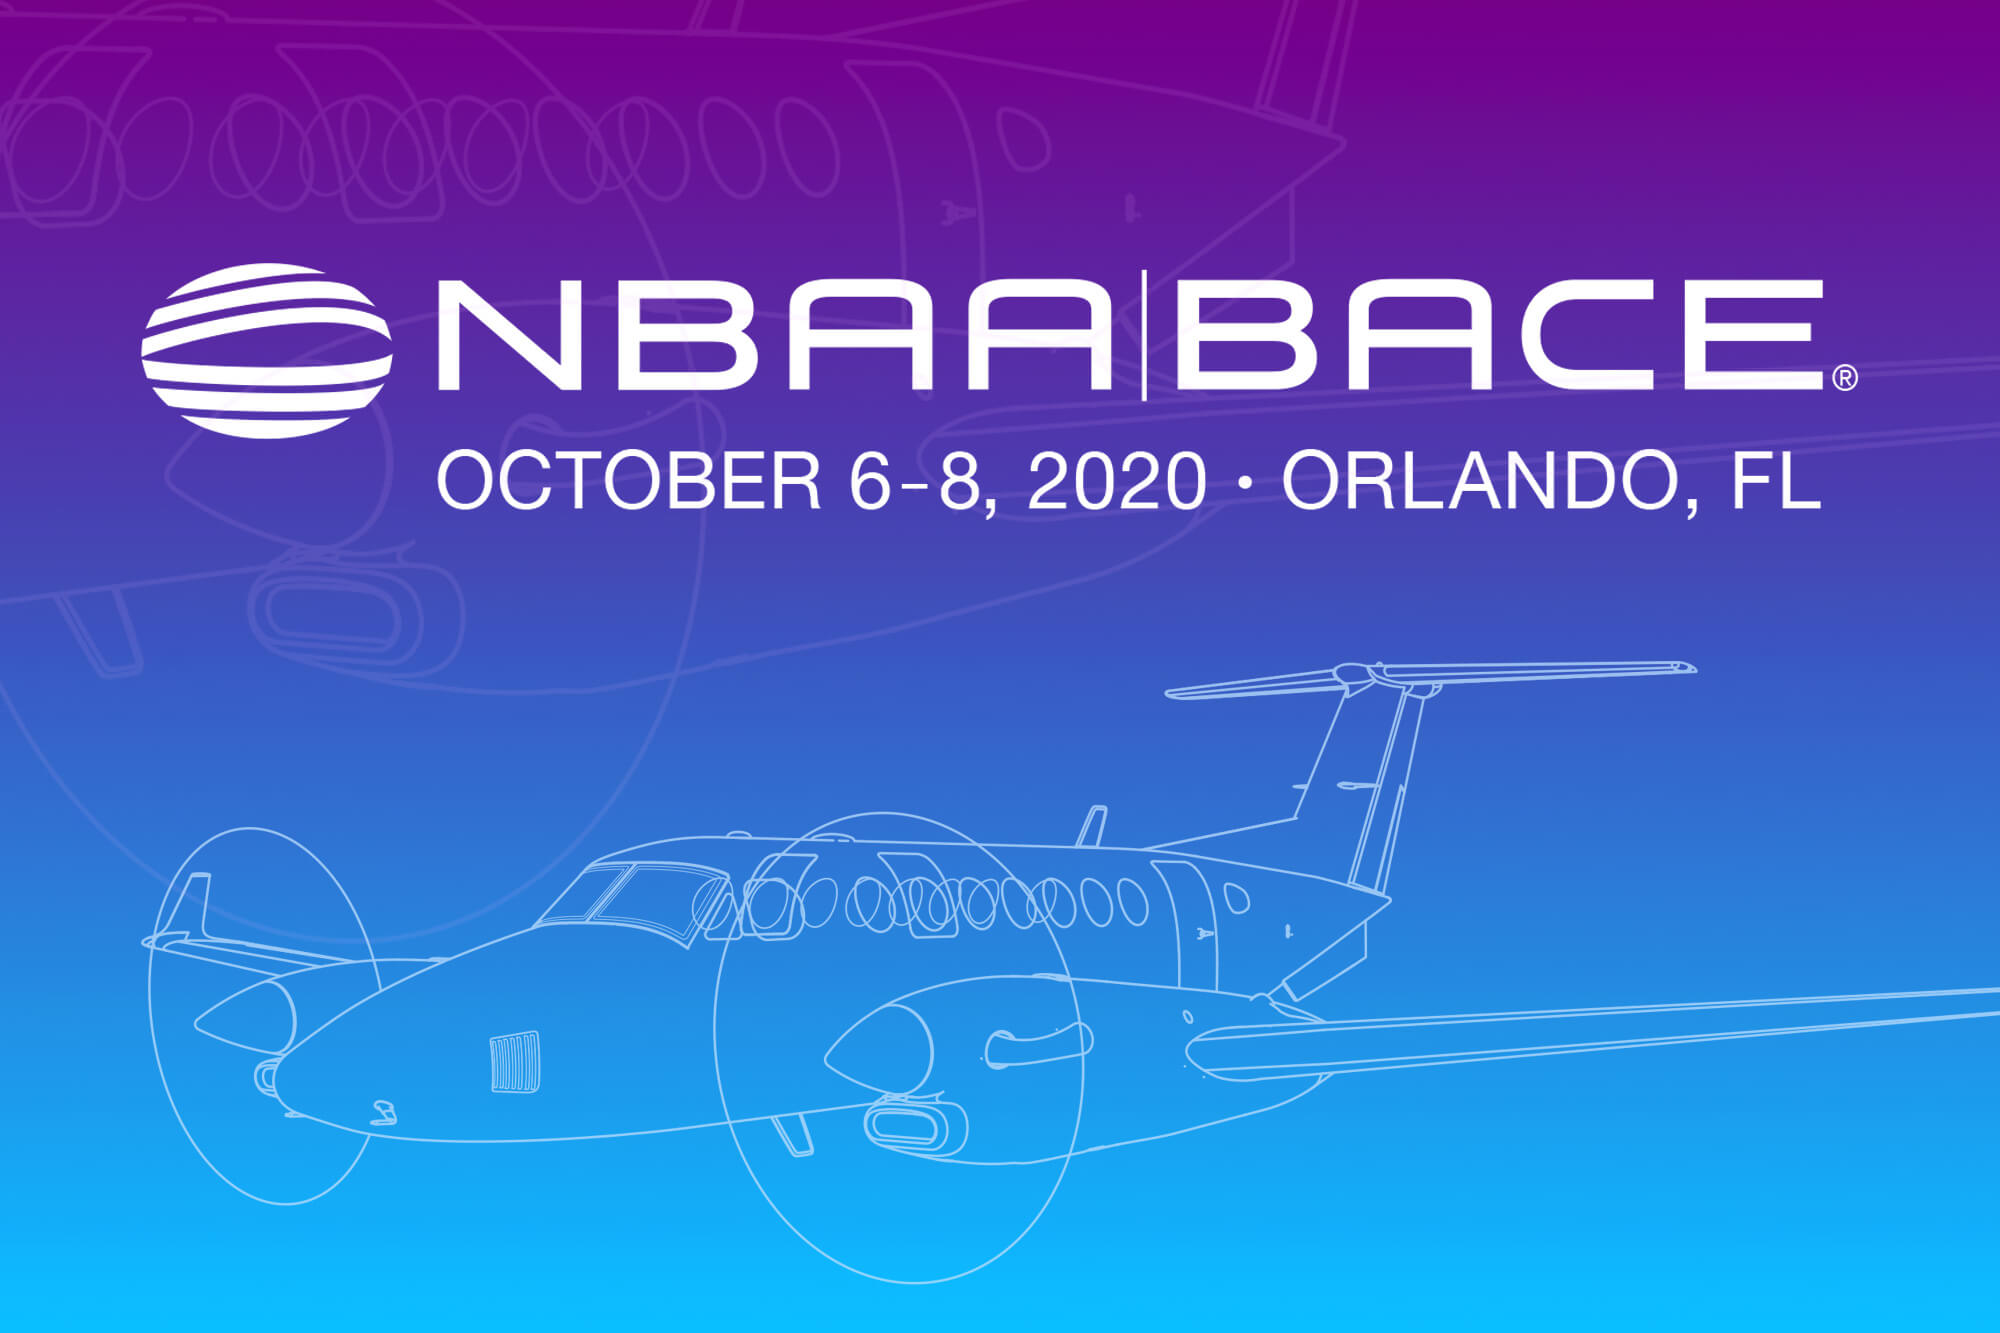 NBAA-BACE 2020 Cancelled Due to COVID-19 Pandemic